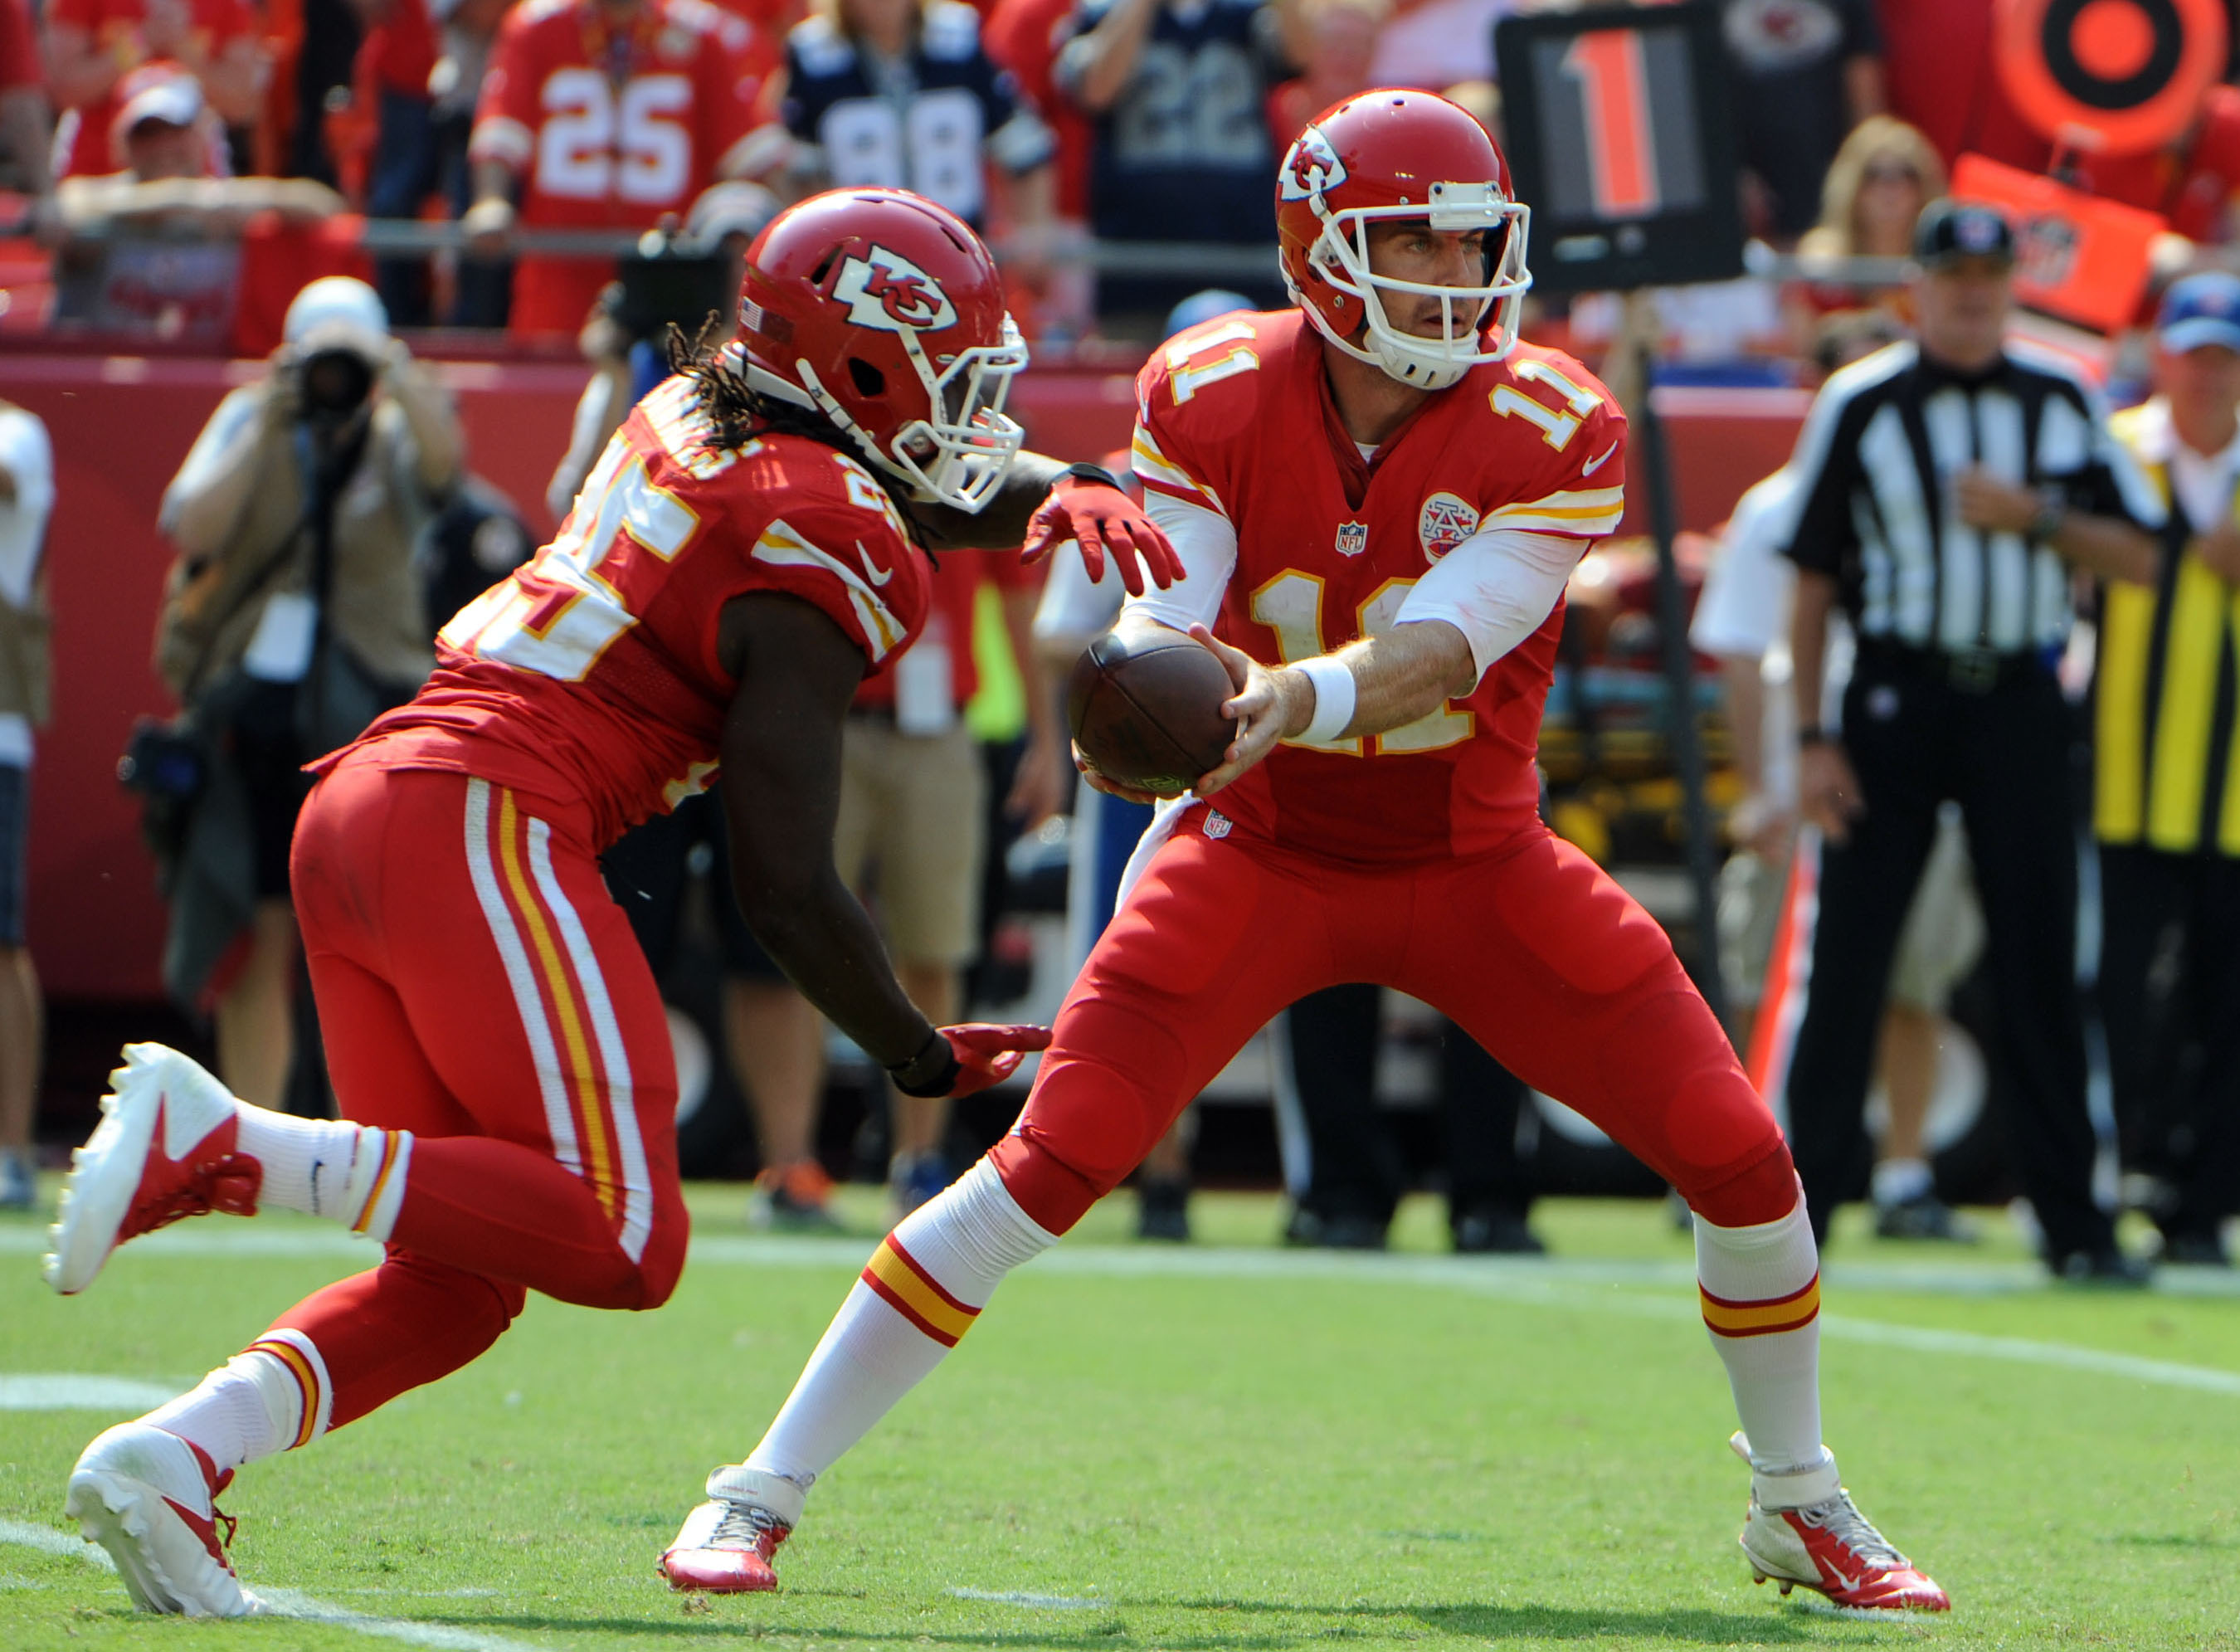 kansas city chiefs will wear red on red uniforms arrowhead pride